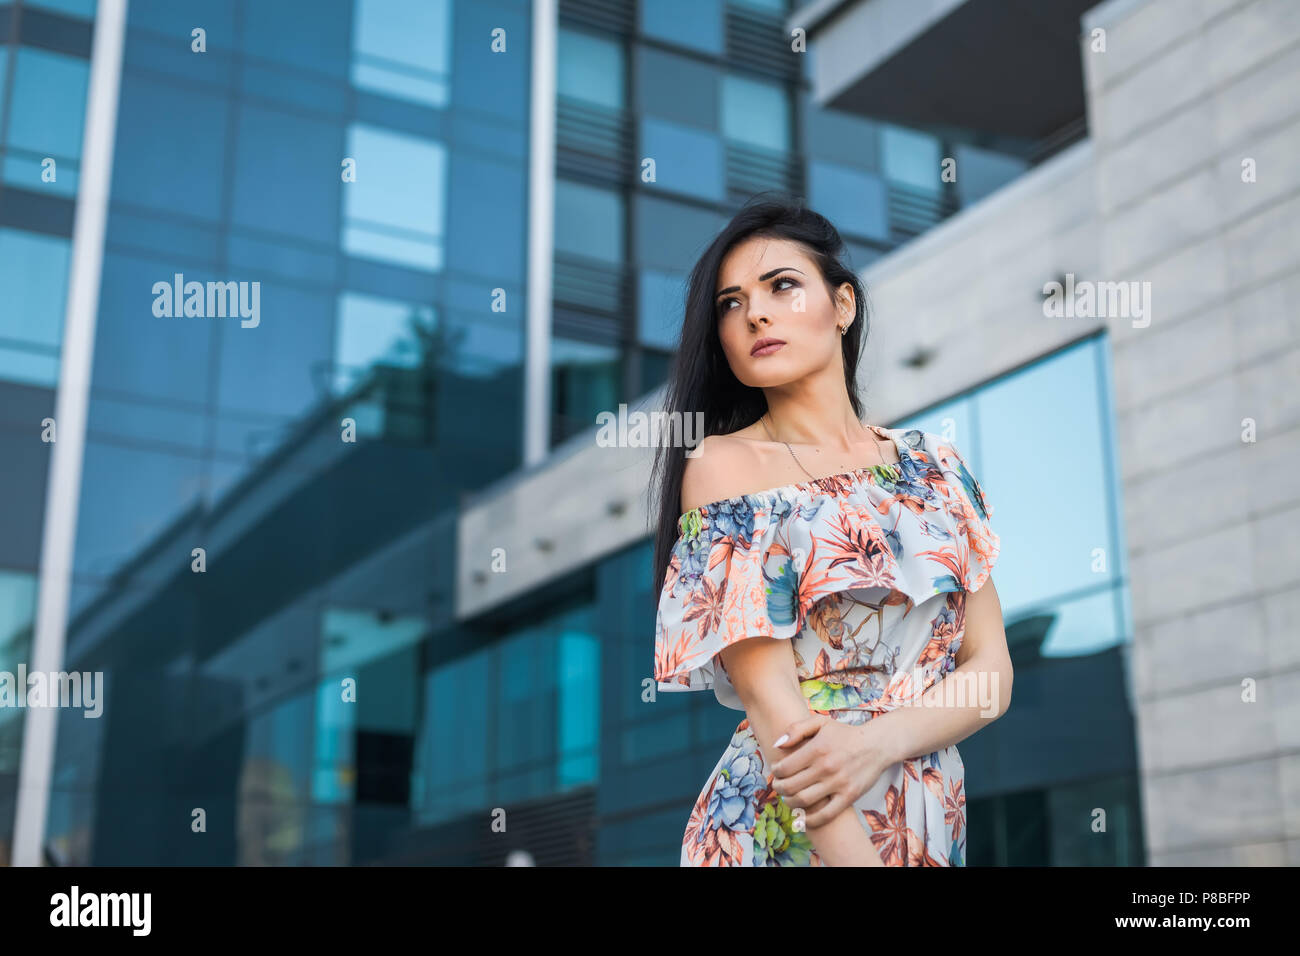 thoughtfull girl in the city - Stock Image